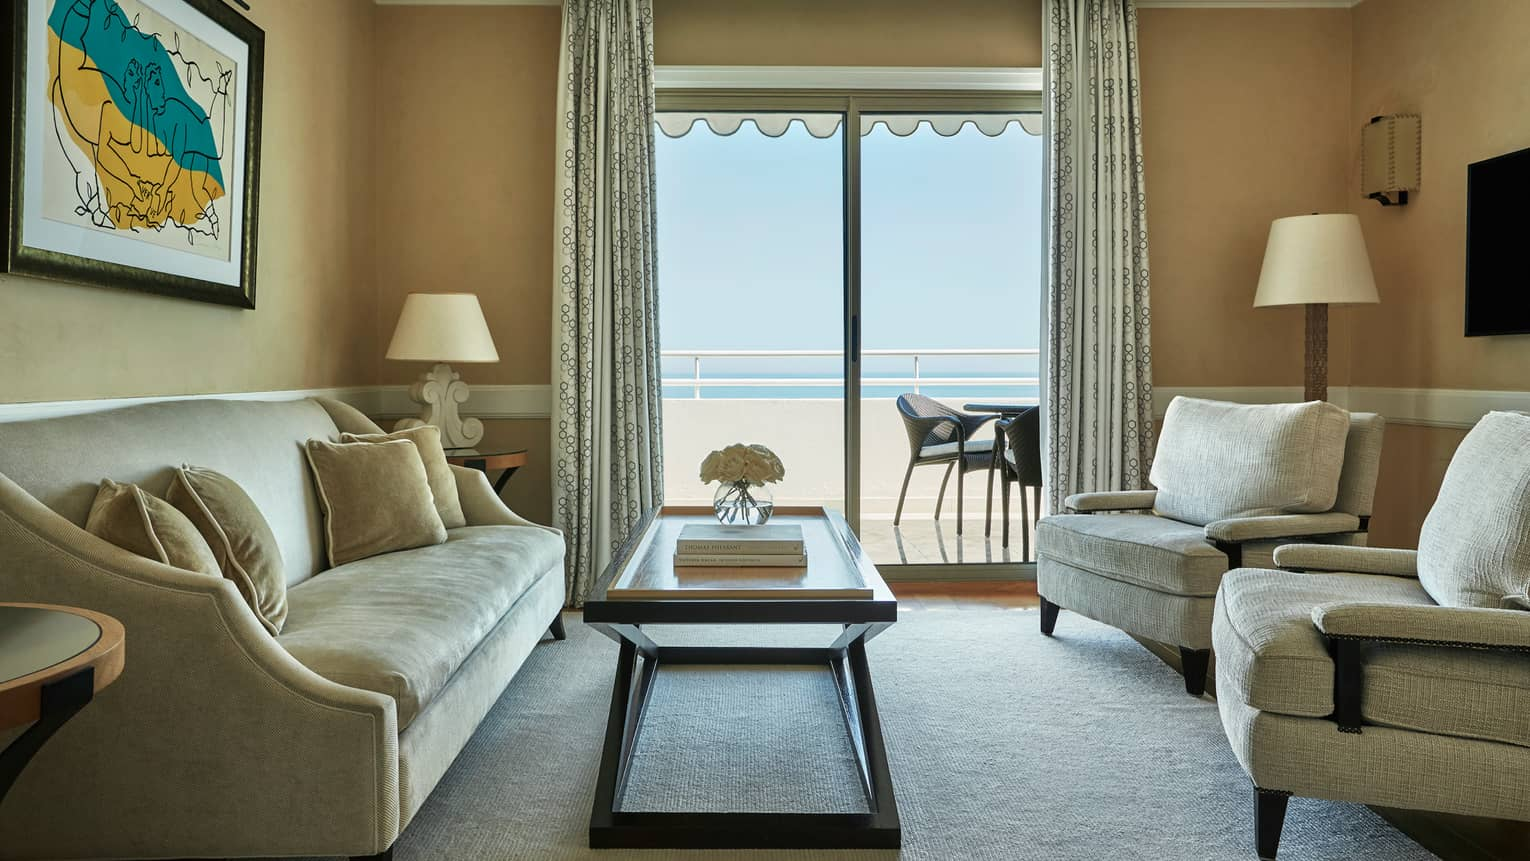 Rooftop Suite beige sofa, armchairs, table by glass sliding doors to balcony